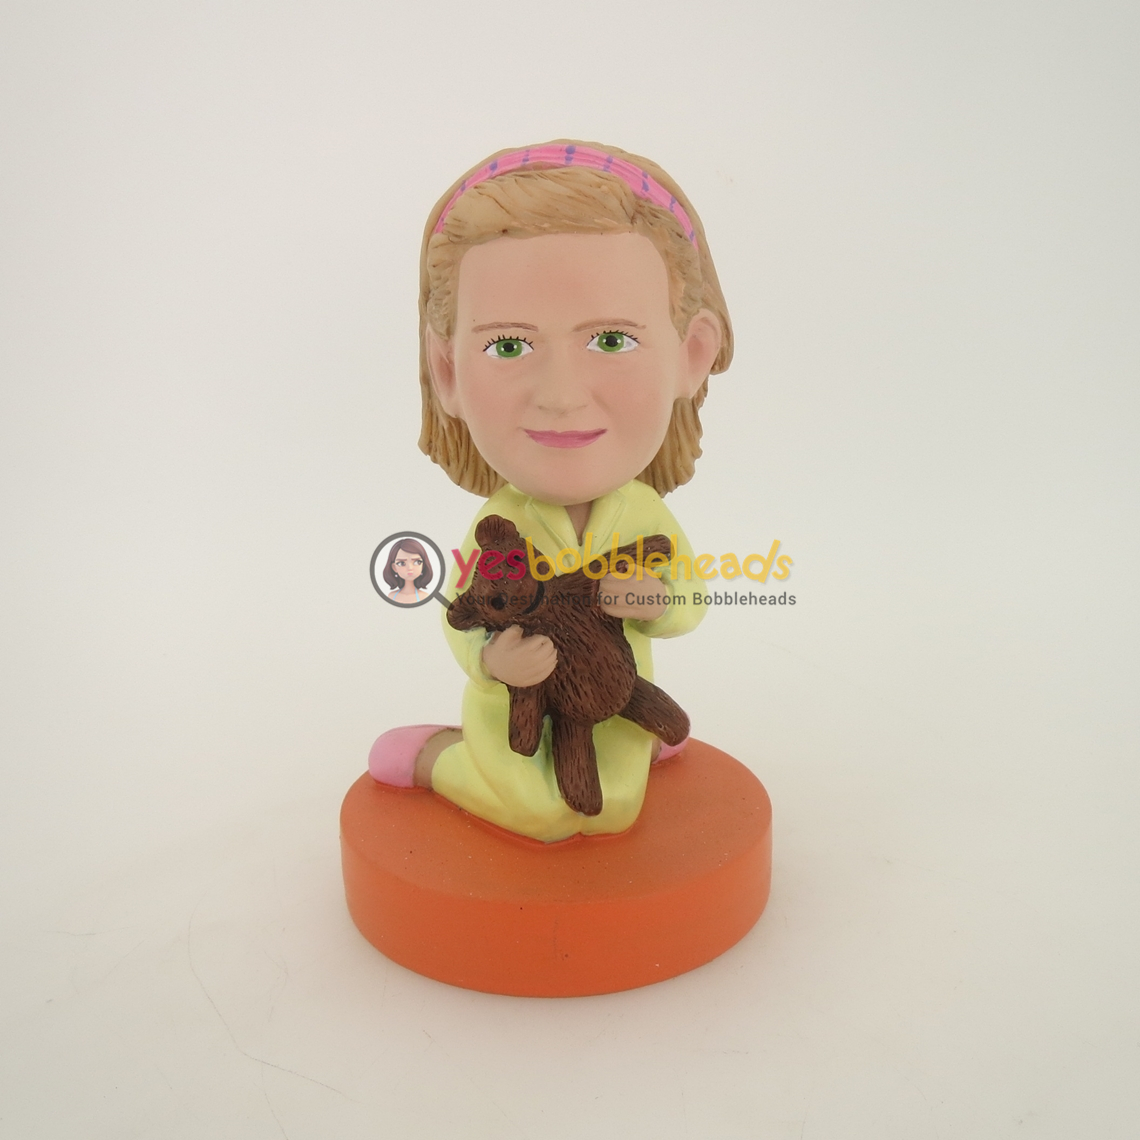 Picture of Custom Bobblehead Doll: Girl With Bear Toy